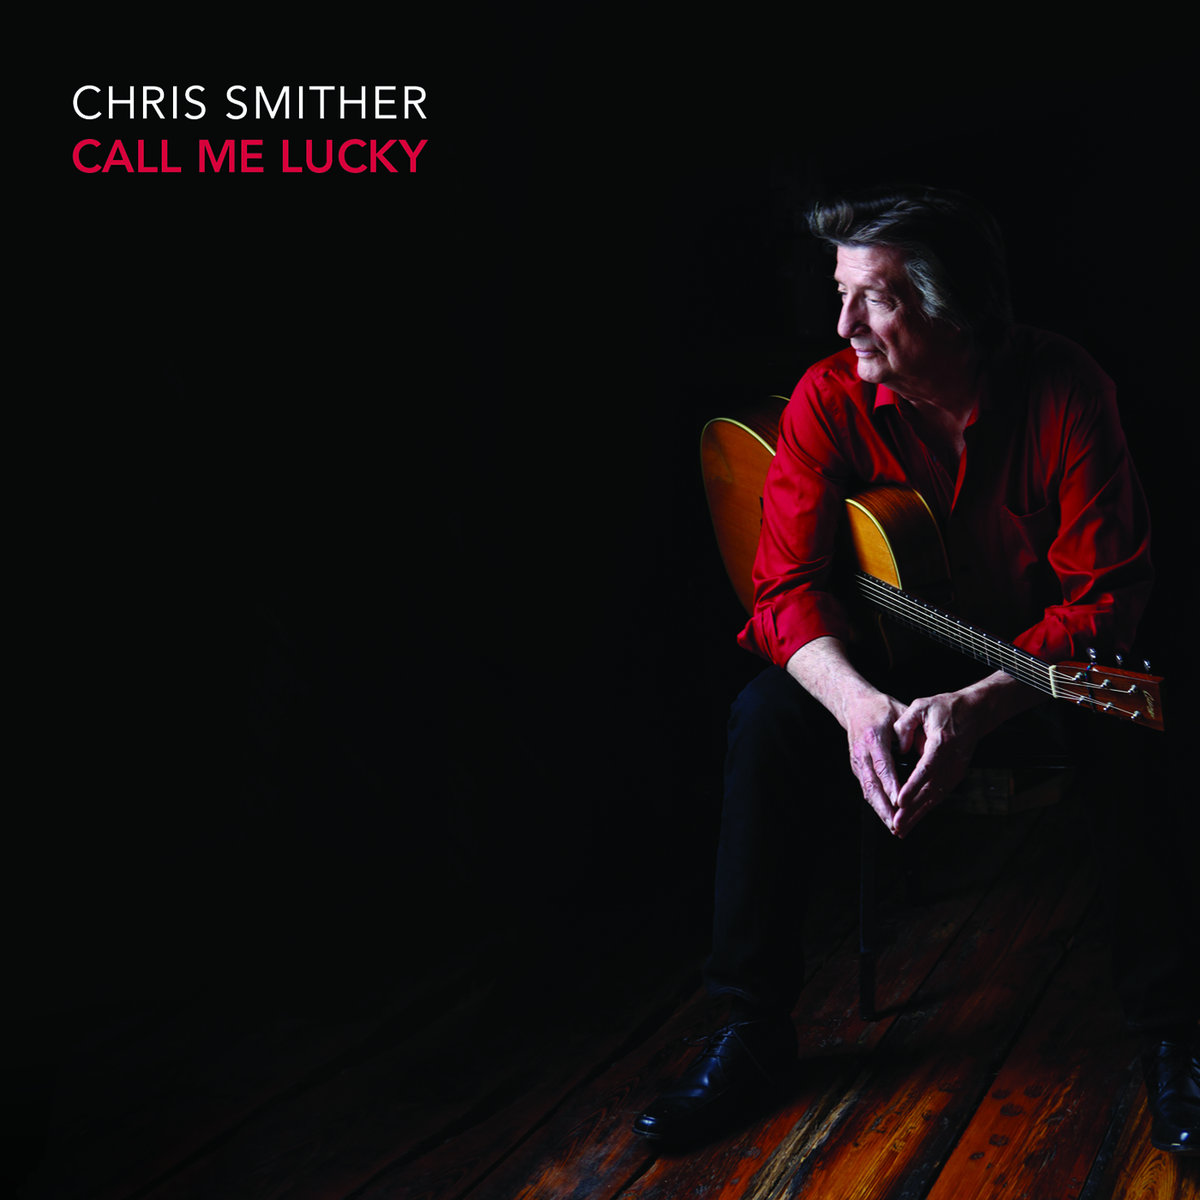 Chris Smither - Call Me Lucky - cover art